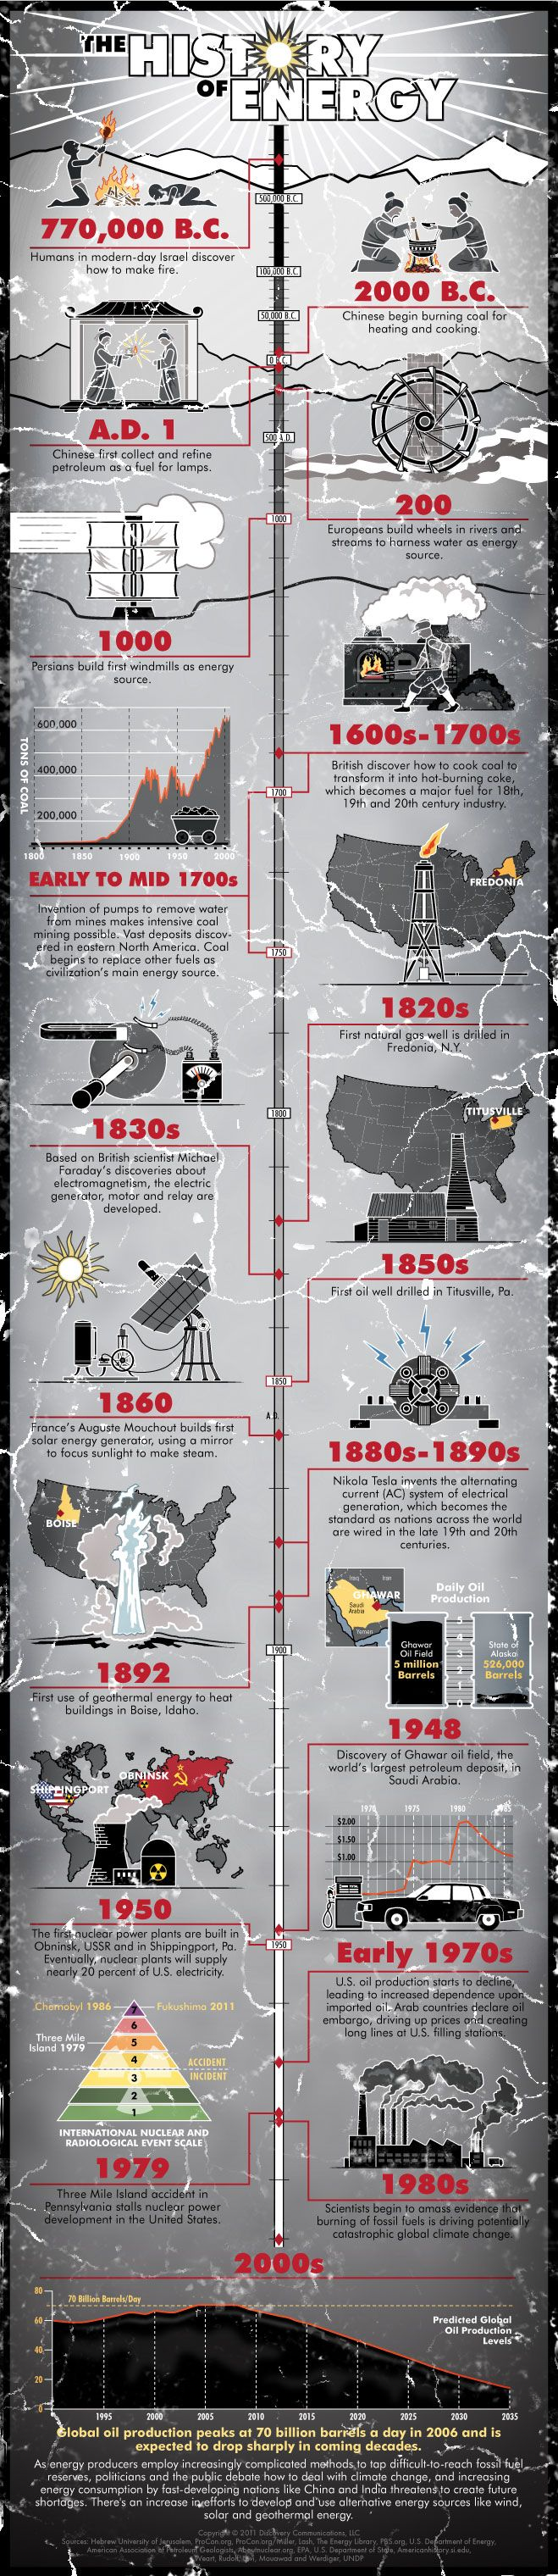 the history of energy